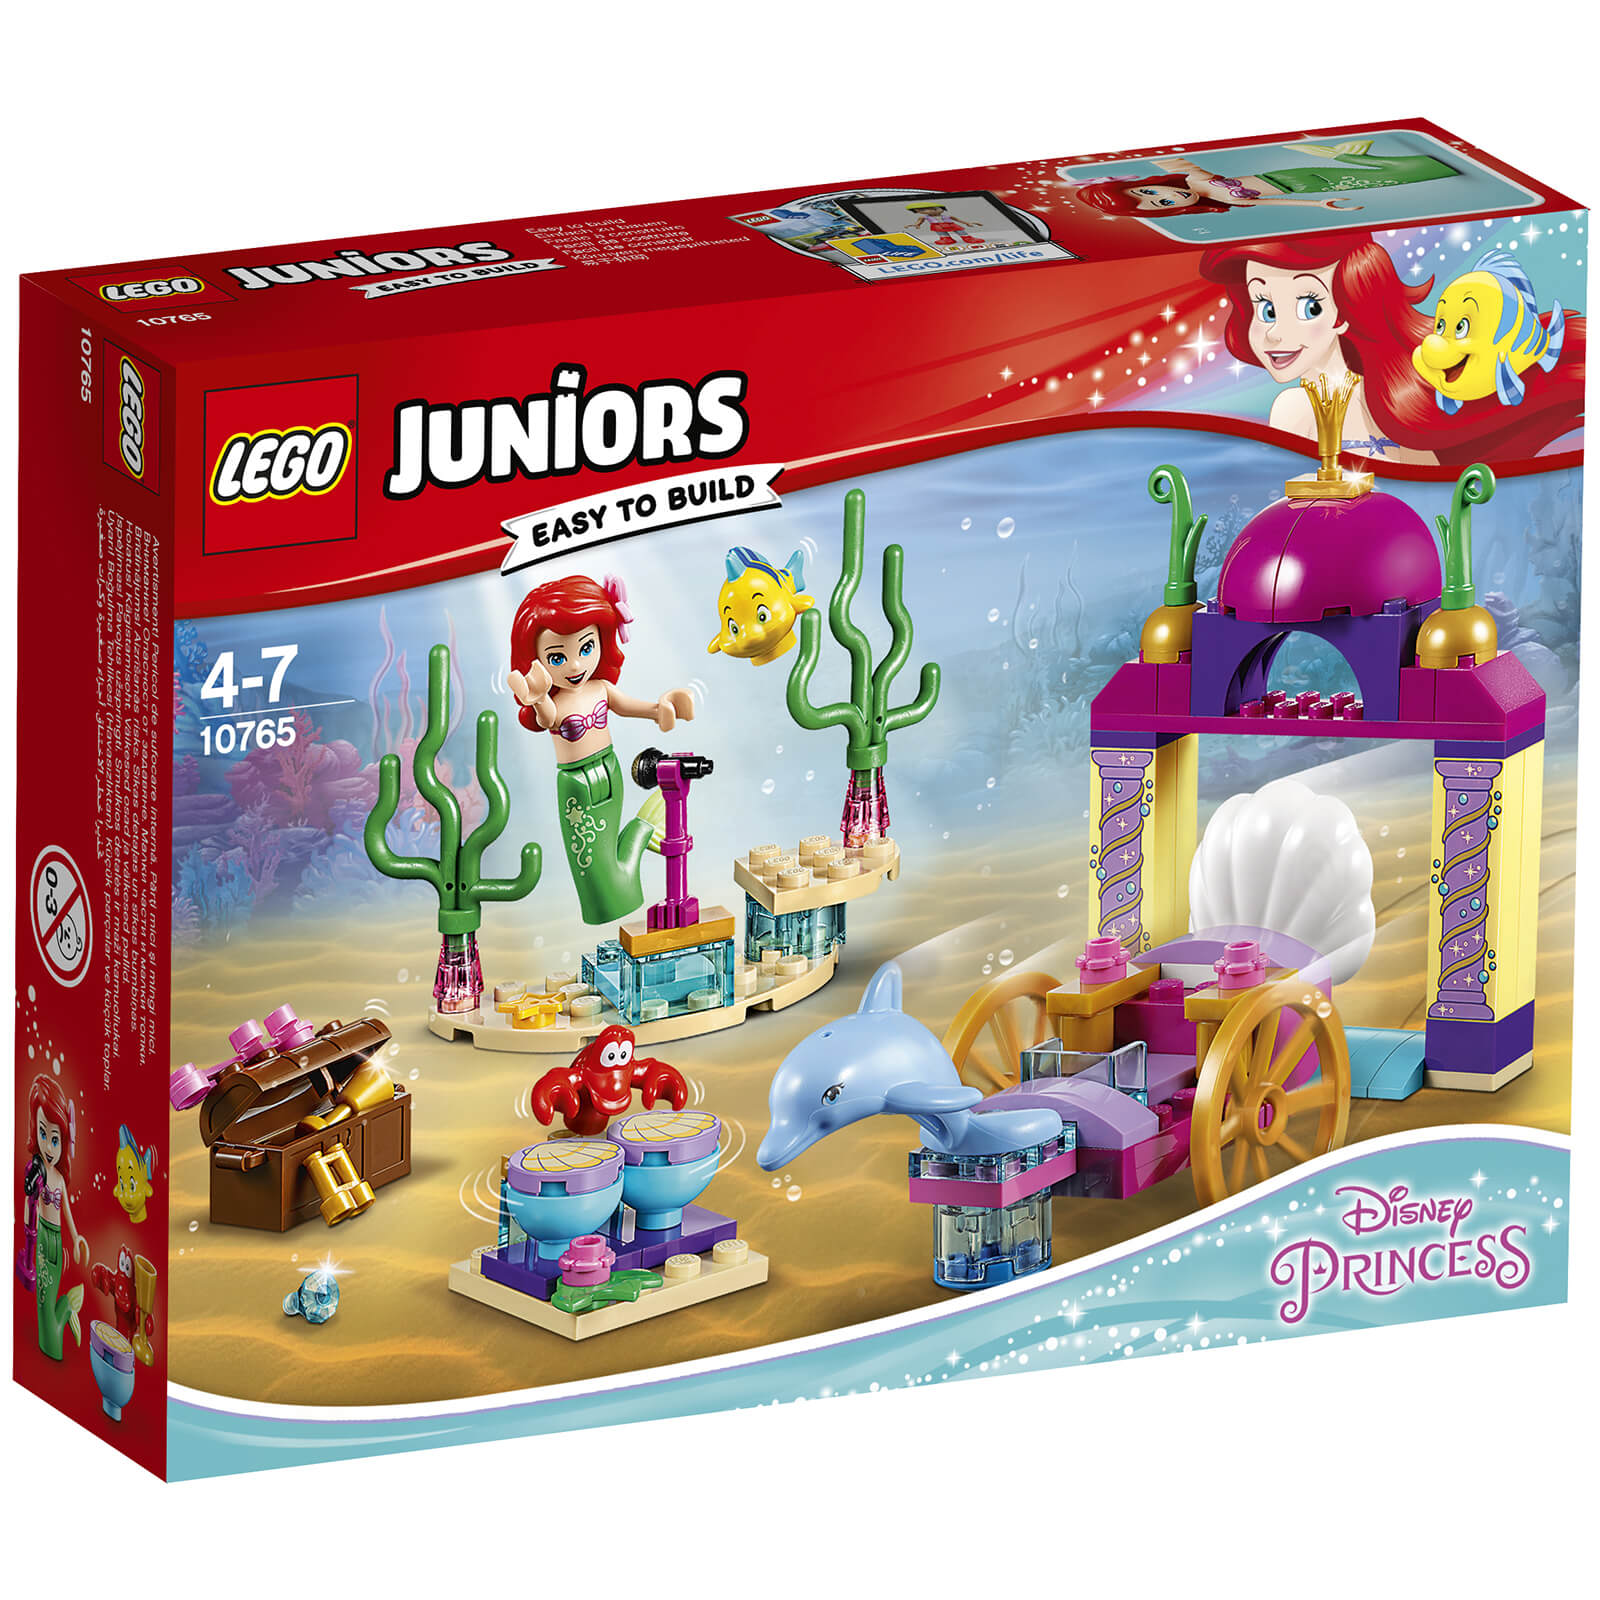 LEGO Juniors Disney Princess: Ariel